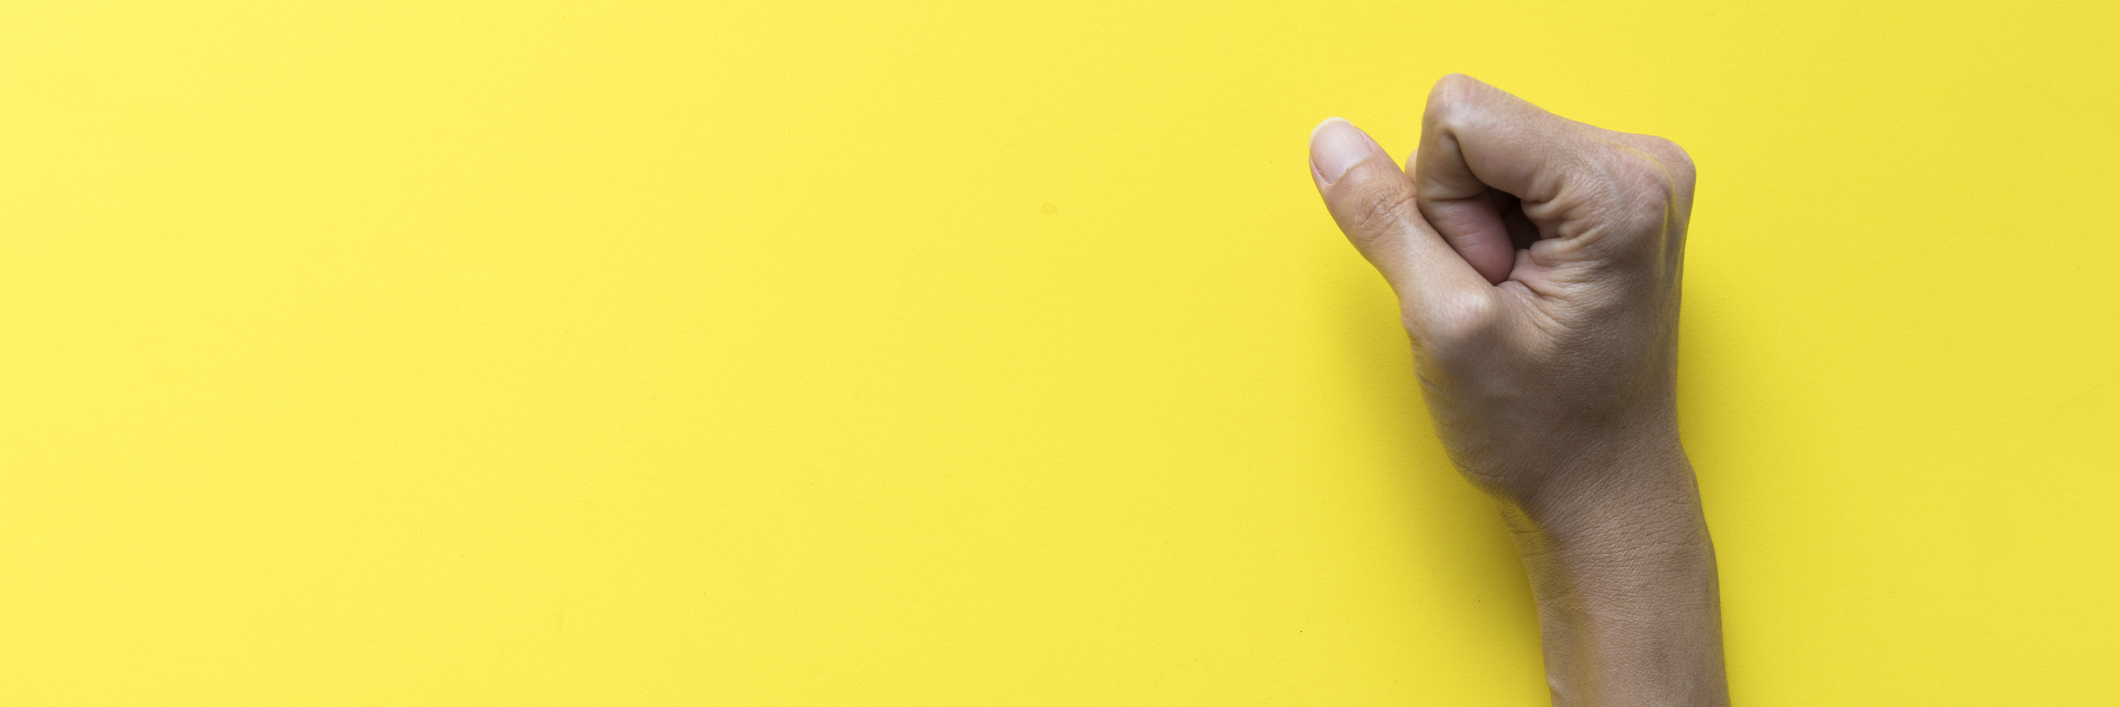 A females fist clinched on a yellow background.